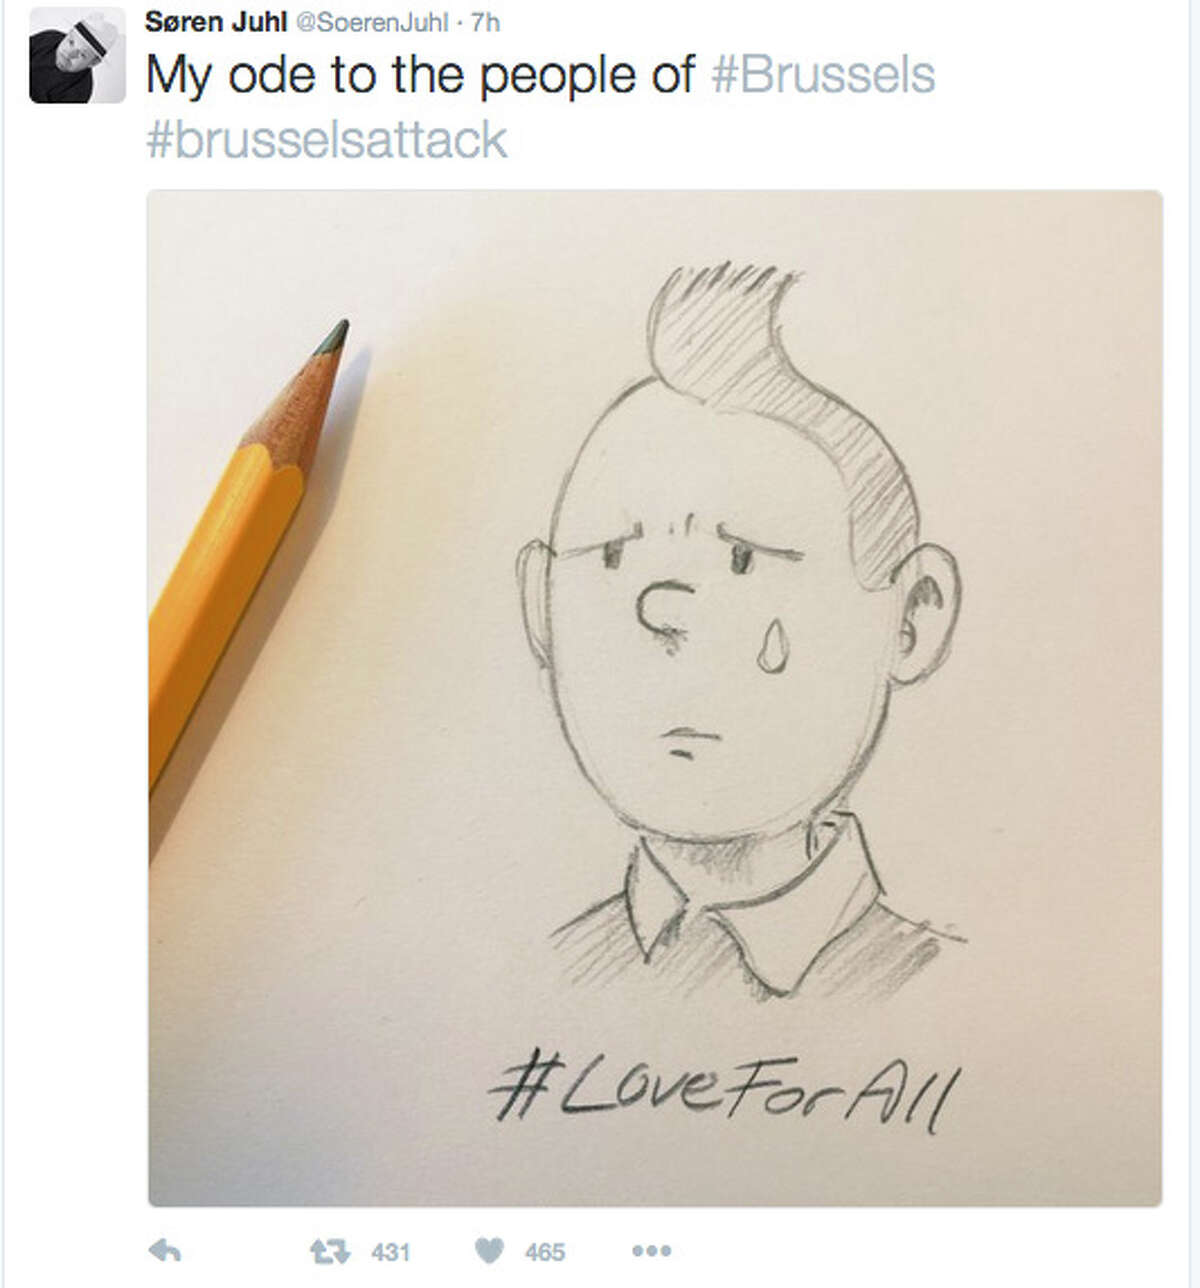 A tearful, beloved cartoon adventurer, Tintin, quickly emerged as a symbol of solidarity in the chaotic aftermath of the Brussels terror attacks.